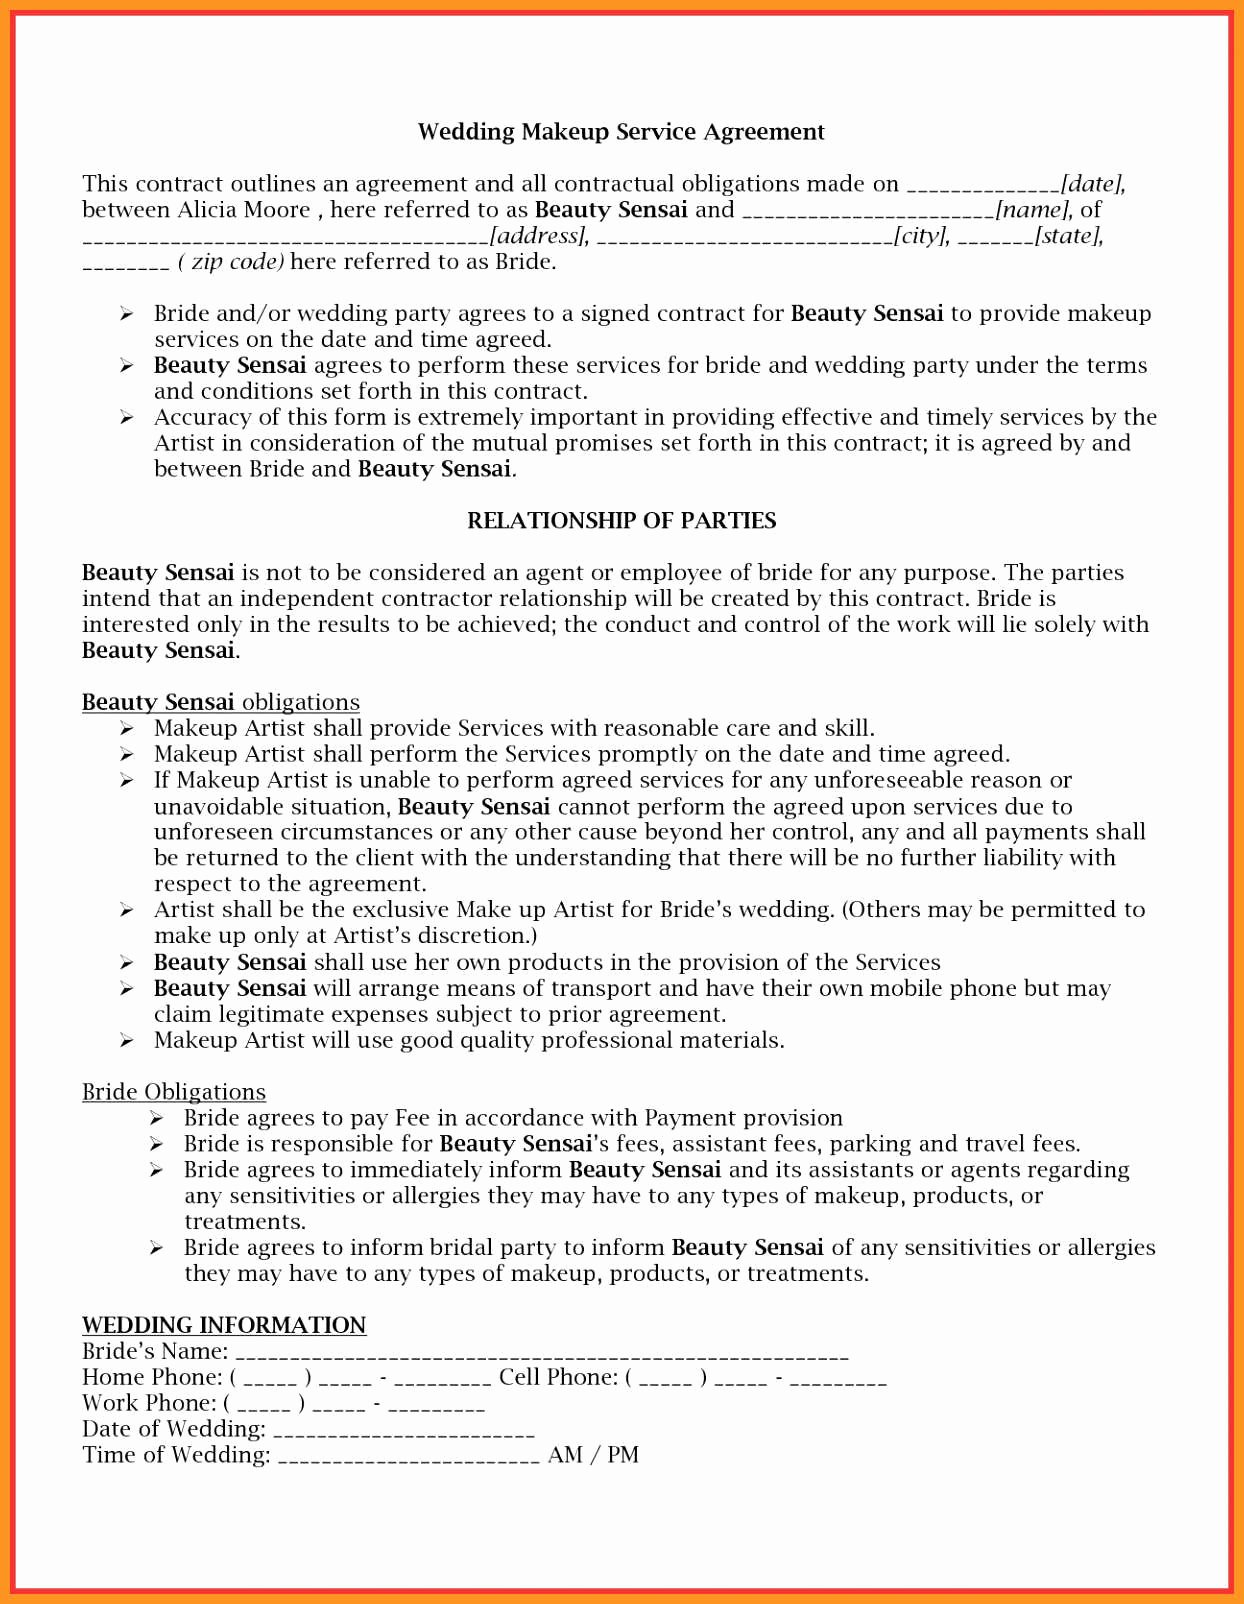 Living Agreement Contract Template Lovely 4 5 Living Agreement Contract Template